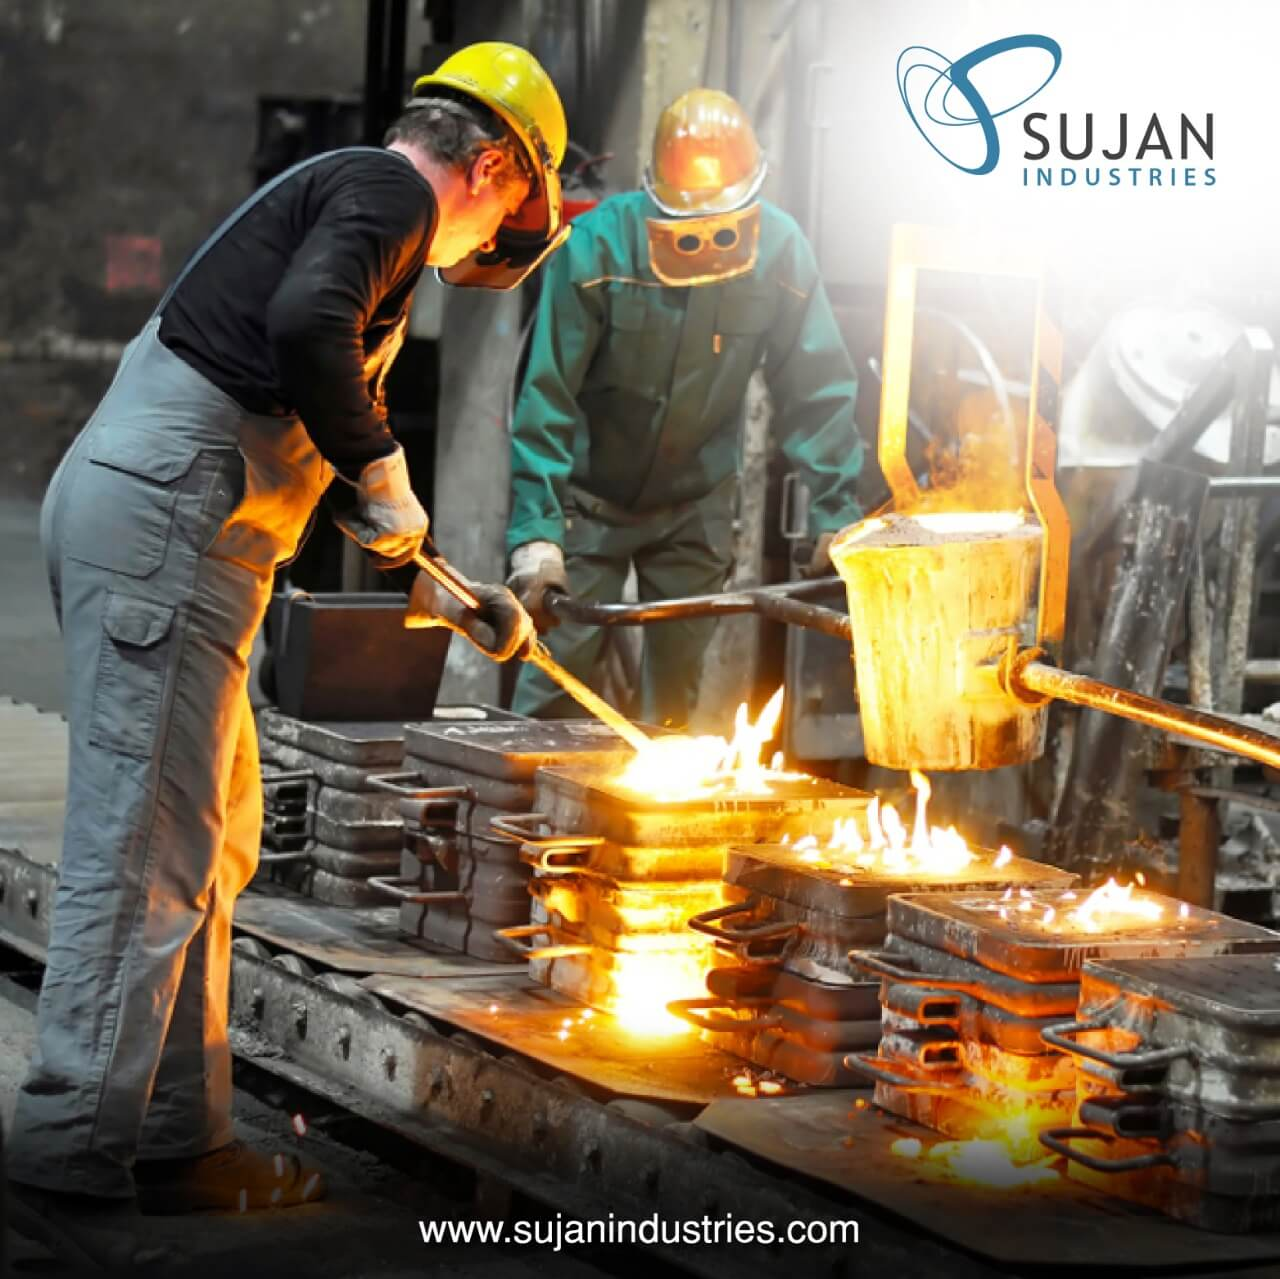 Stainless Steel Casting Manufacturers in Mumbai India